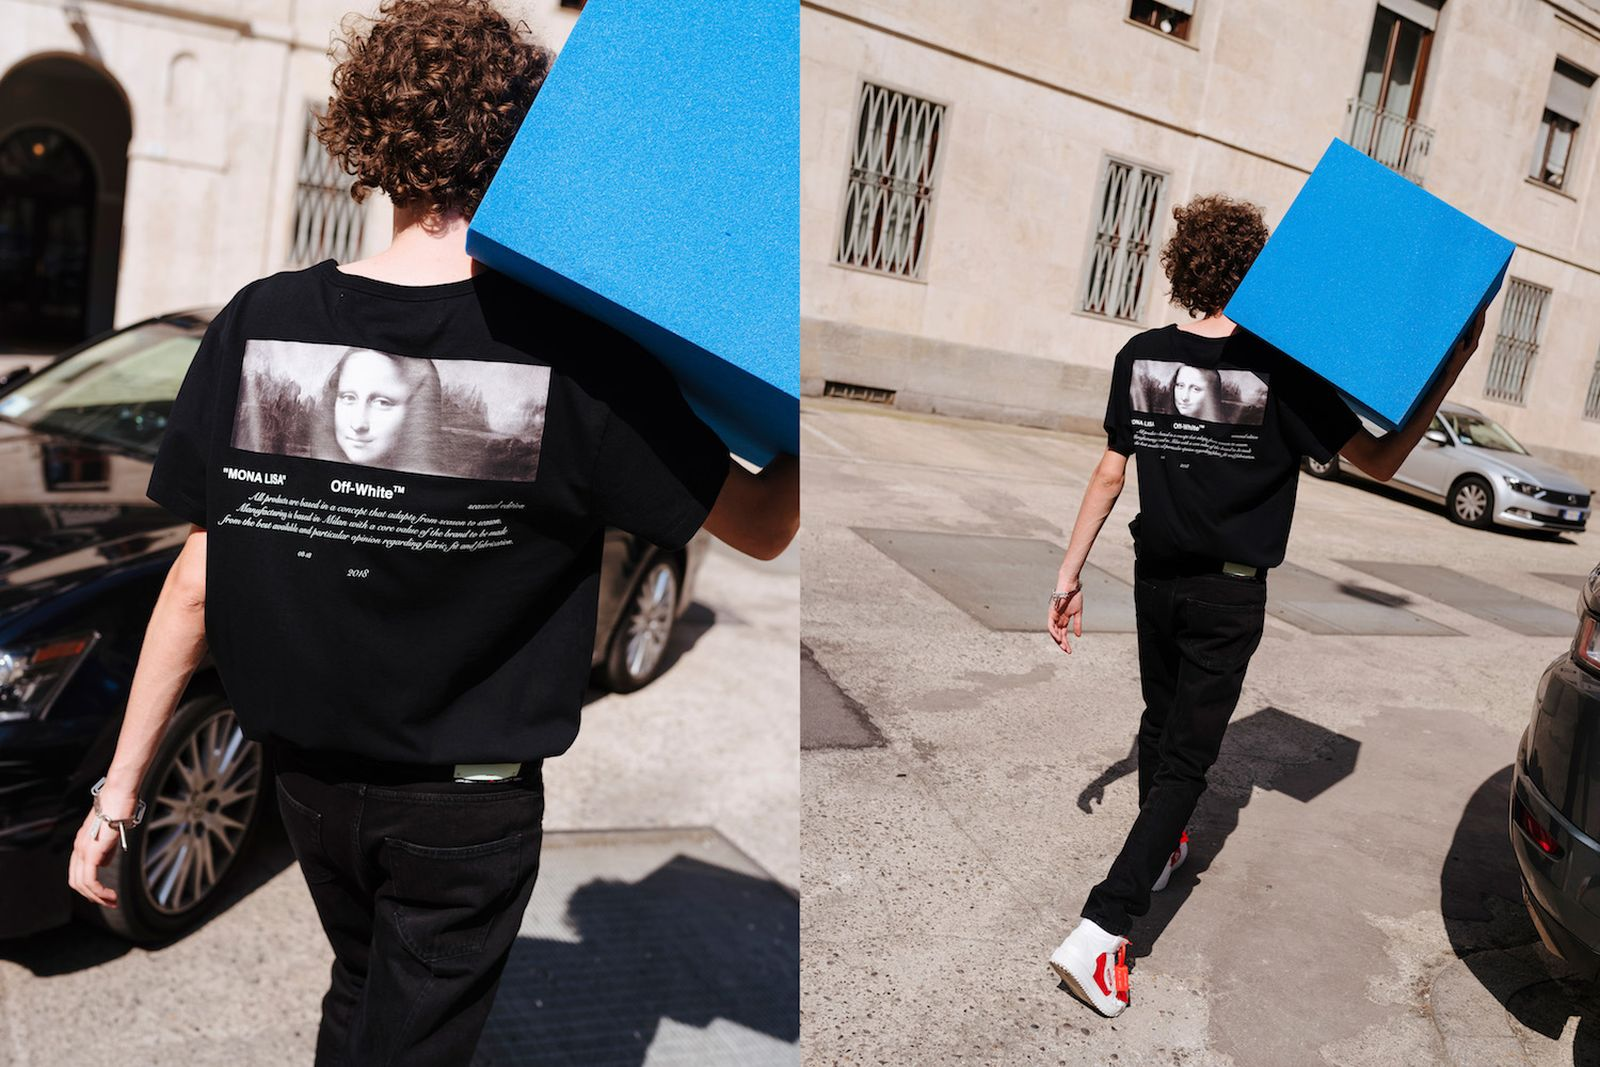 off white for all second drop OFF-WHITE c/o Virgil Abloh